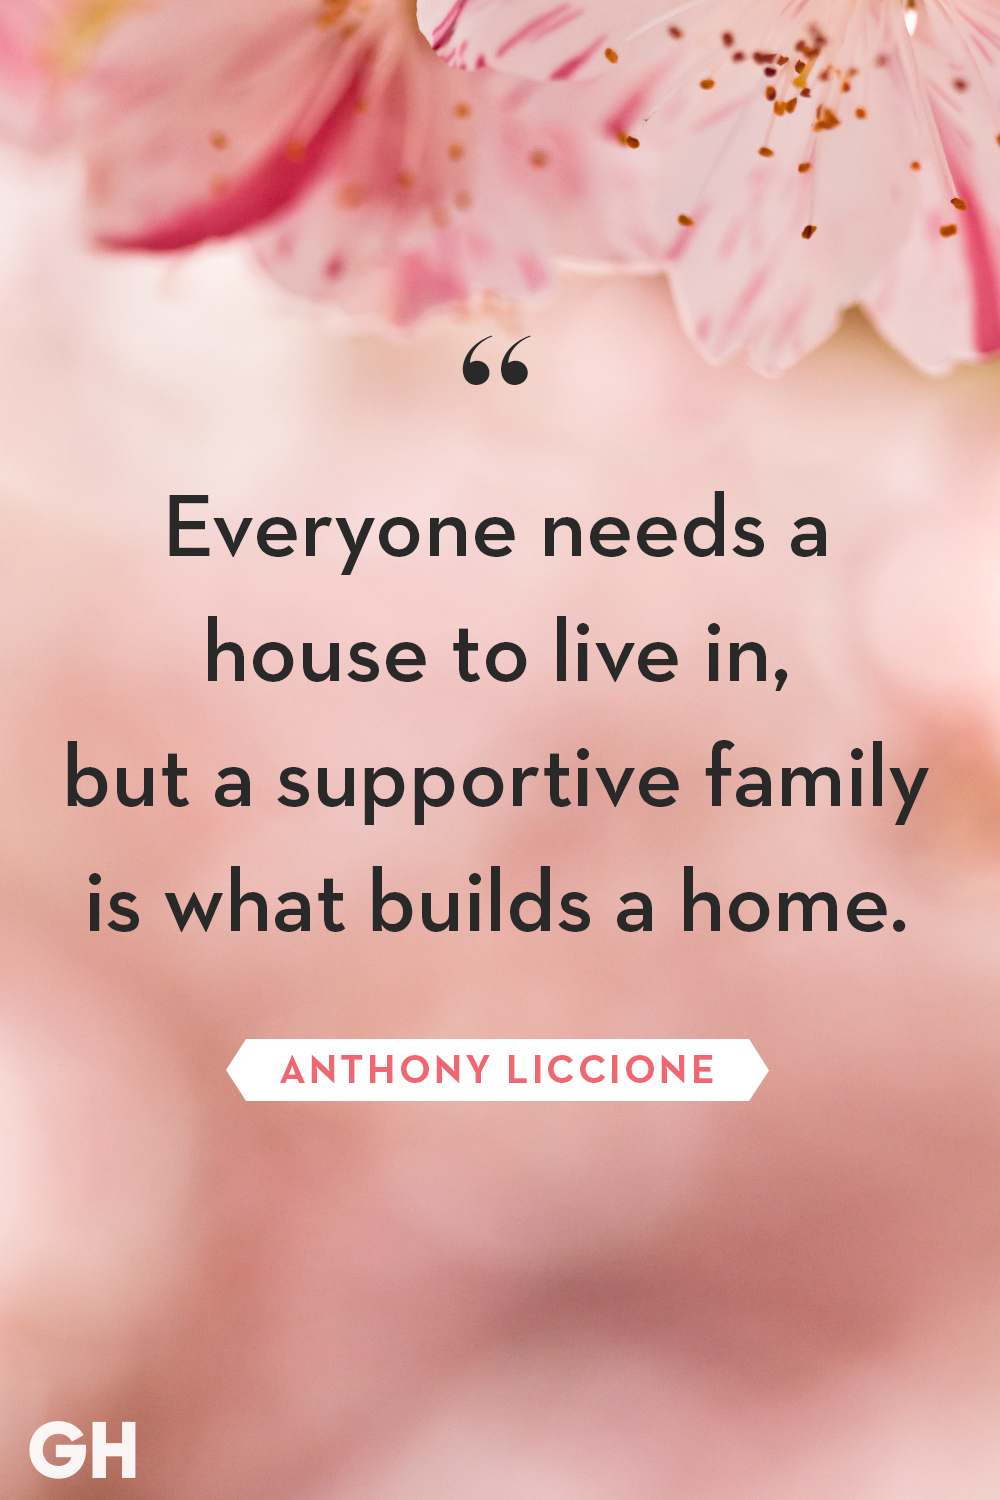 9 Family Quotes - Short Quotes About the Importance of Family